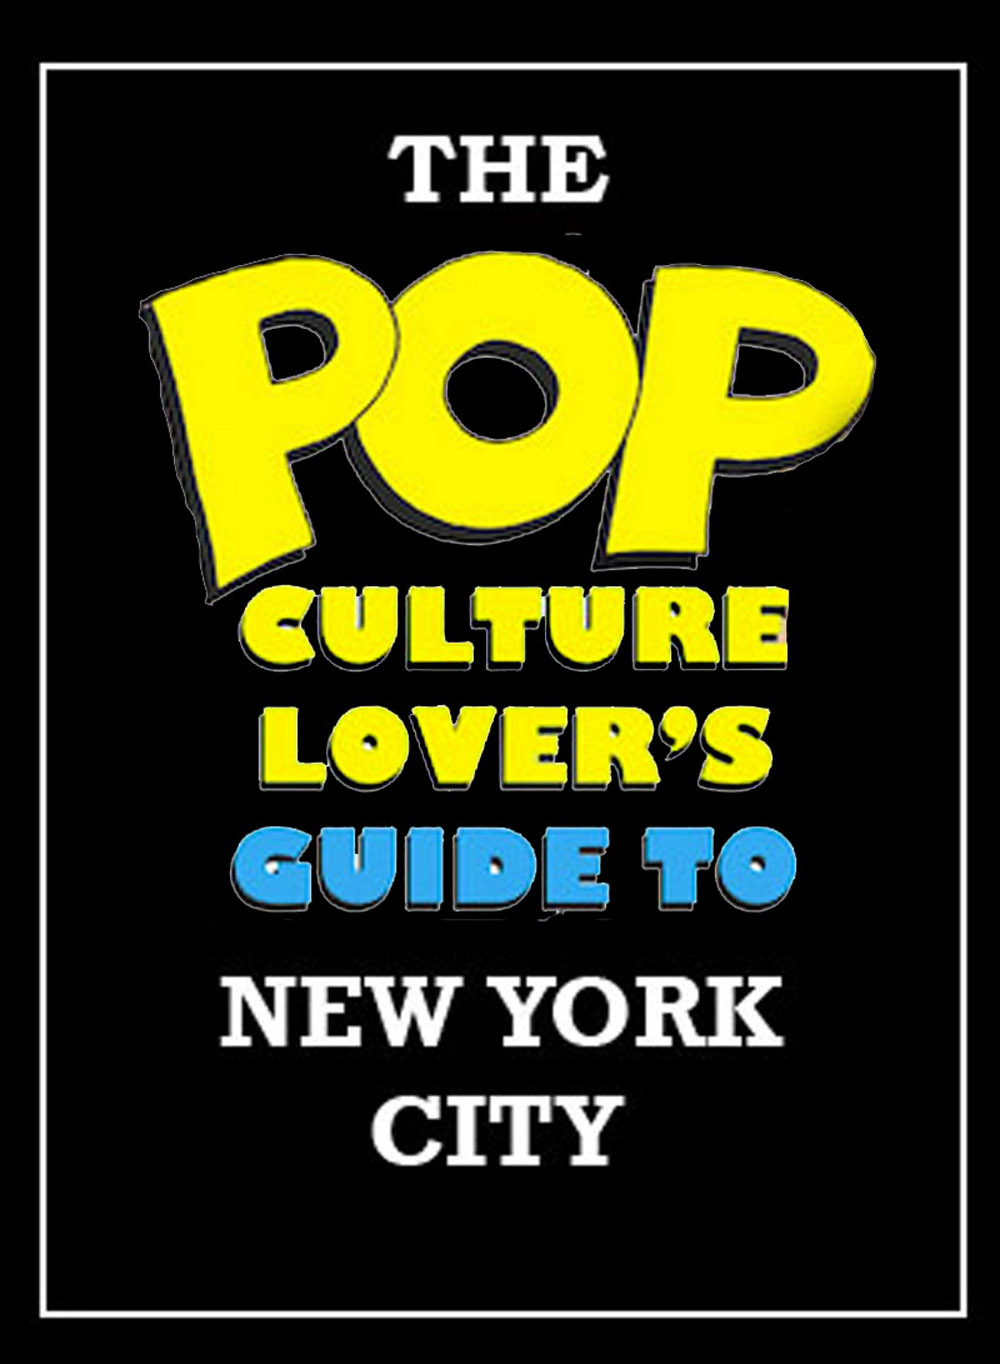 The Pop Culture r's Guide to New York CIty - Home Page Celebrity Homes Nyc Map on